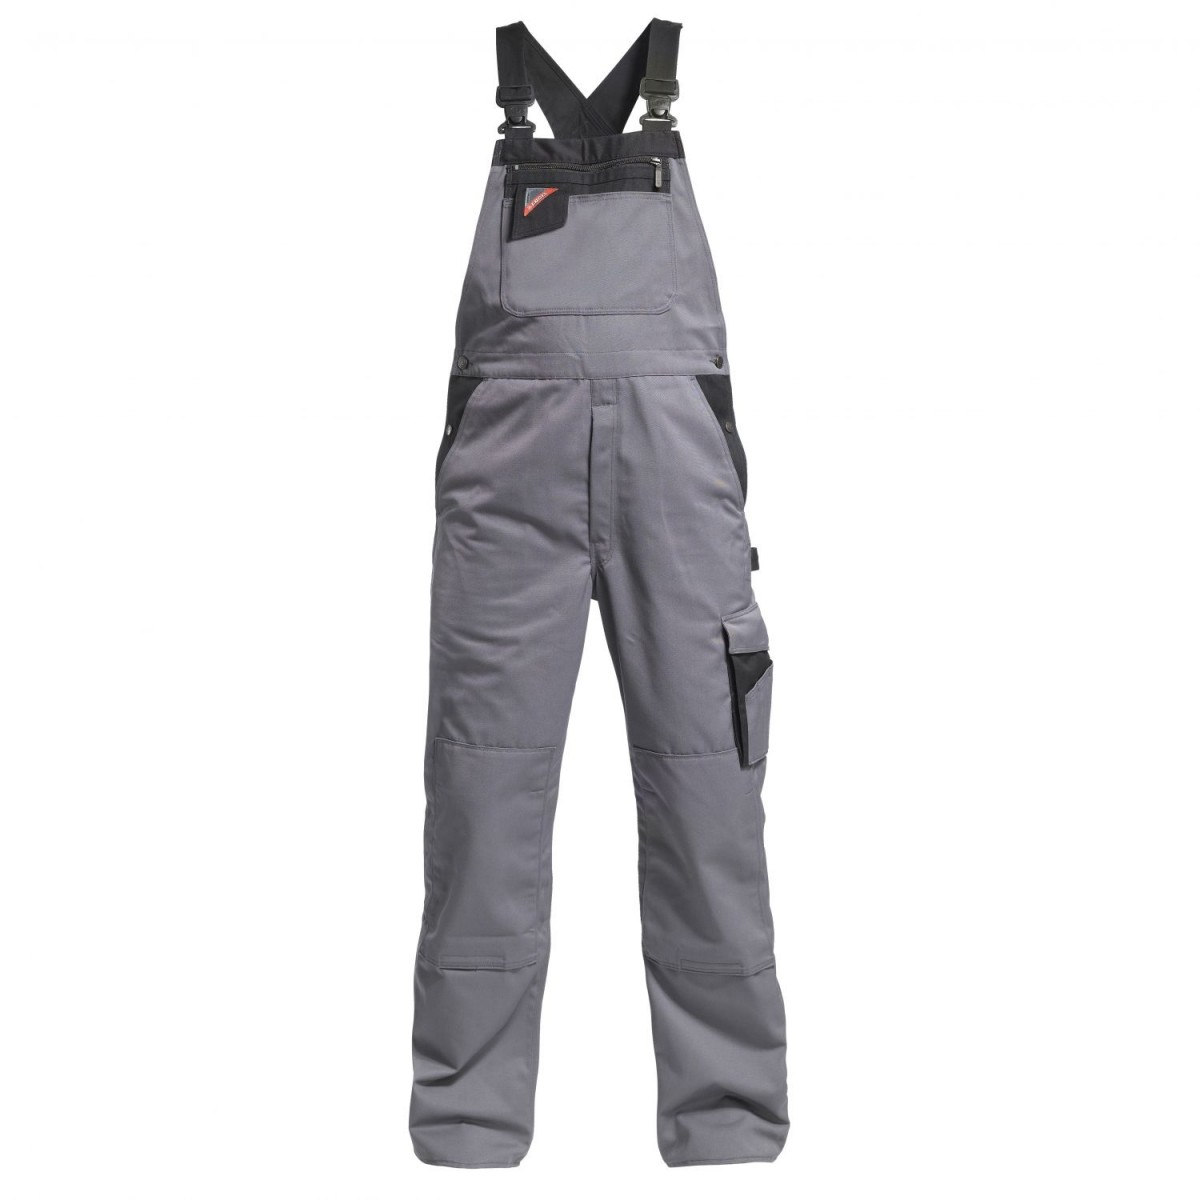 F. Engel Enterprise overalls Grå/Sort-38